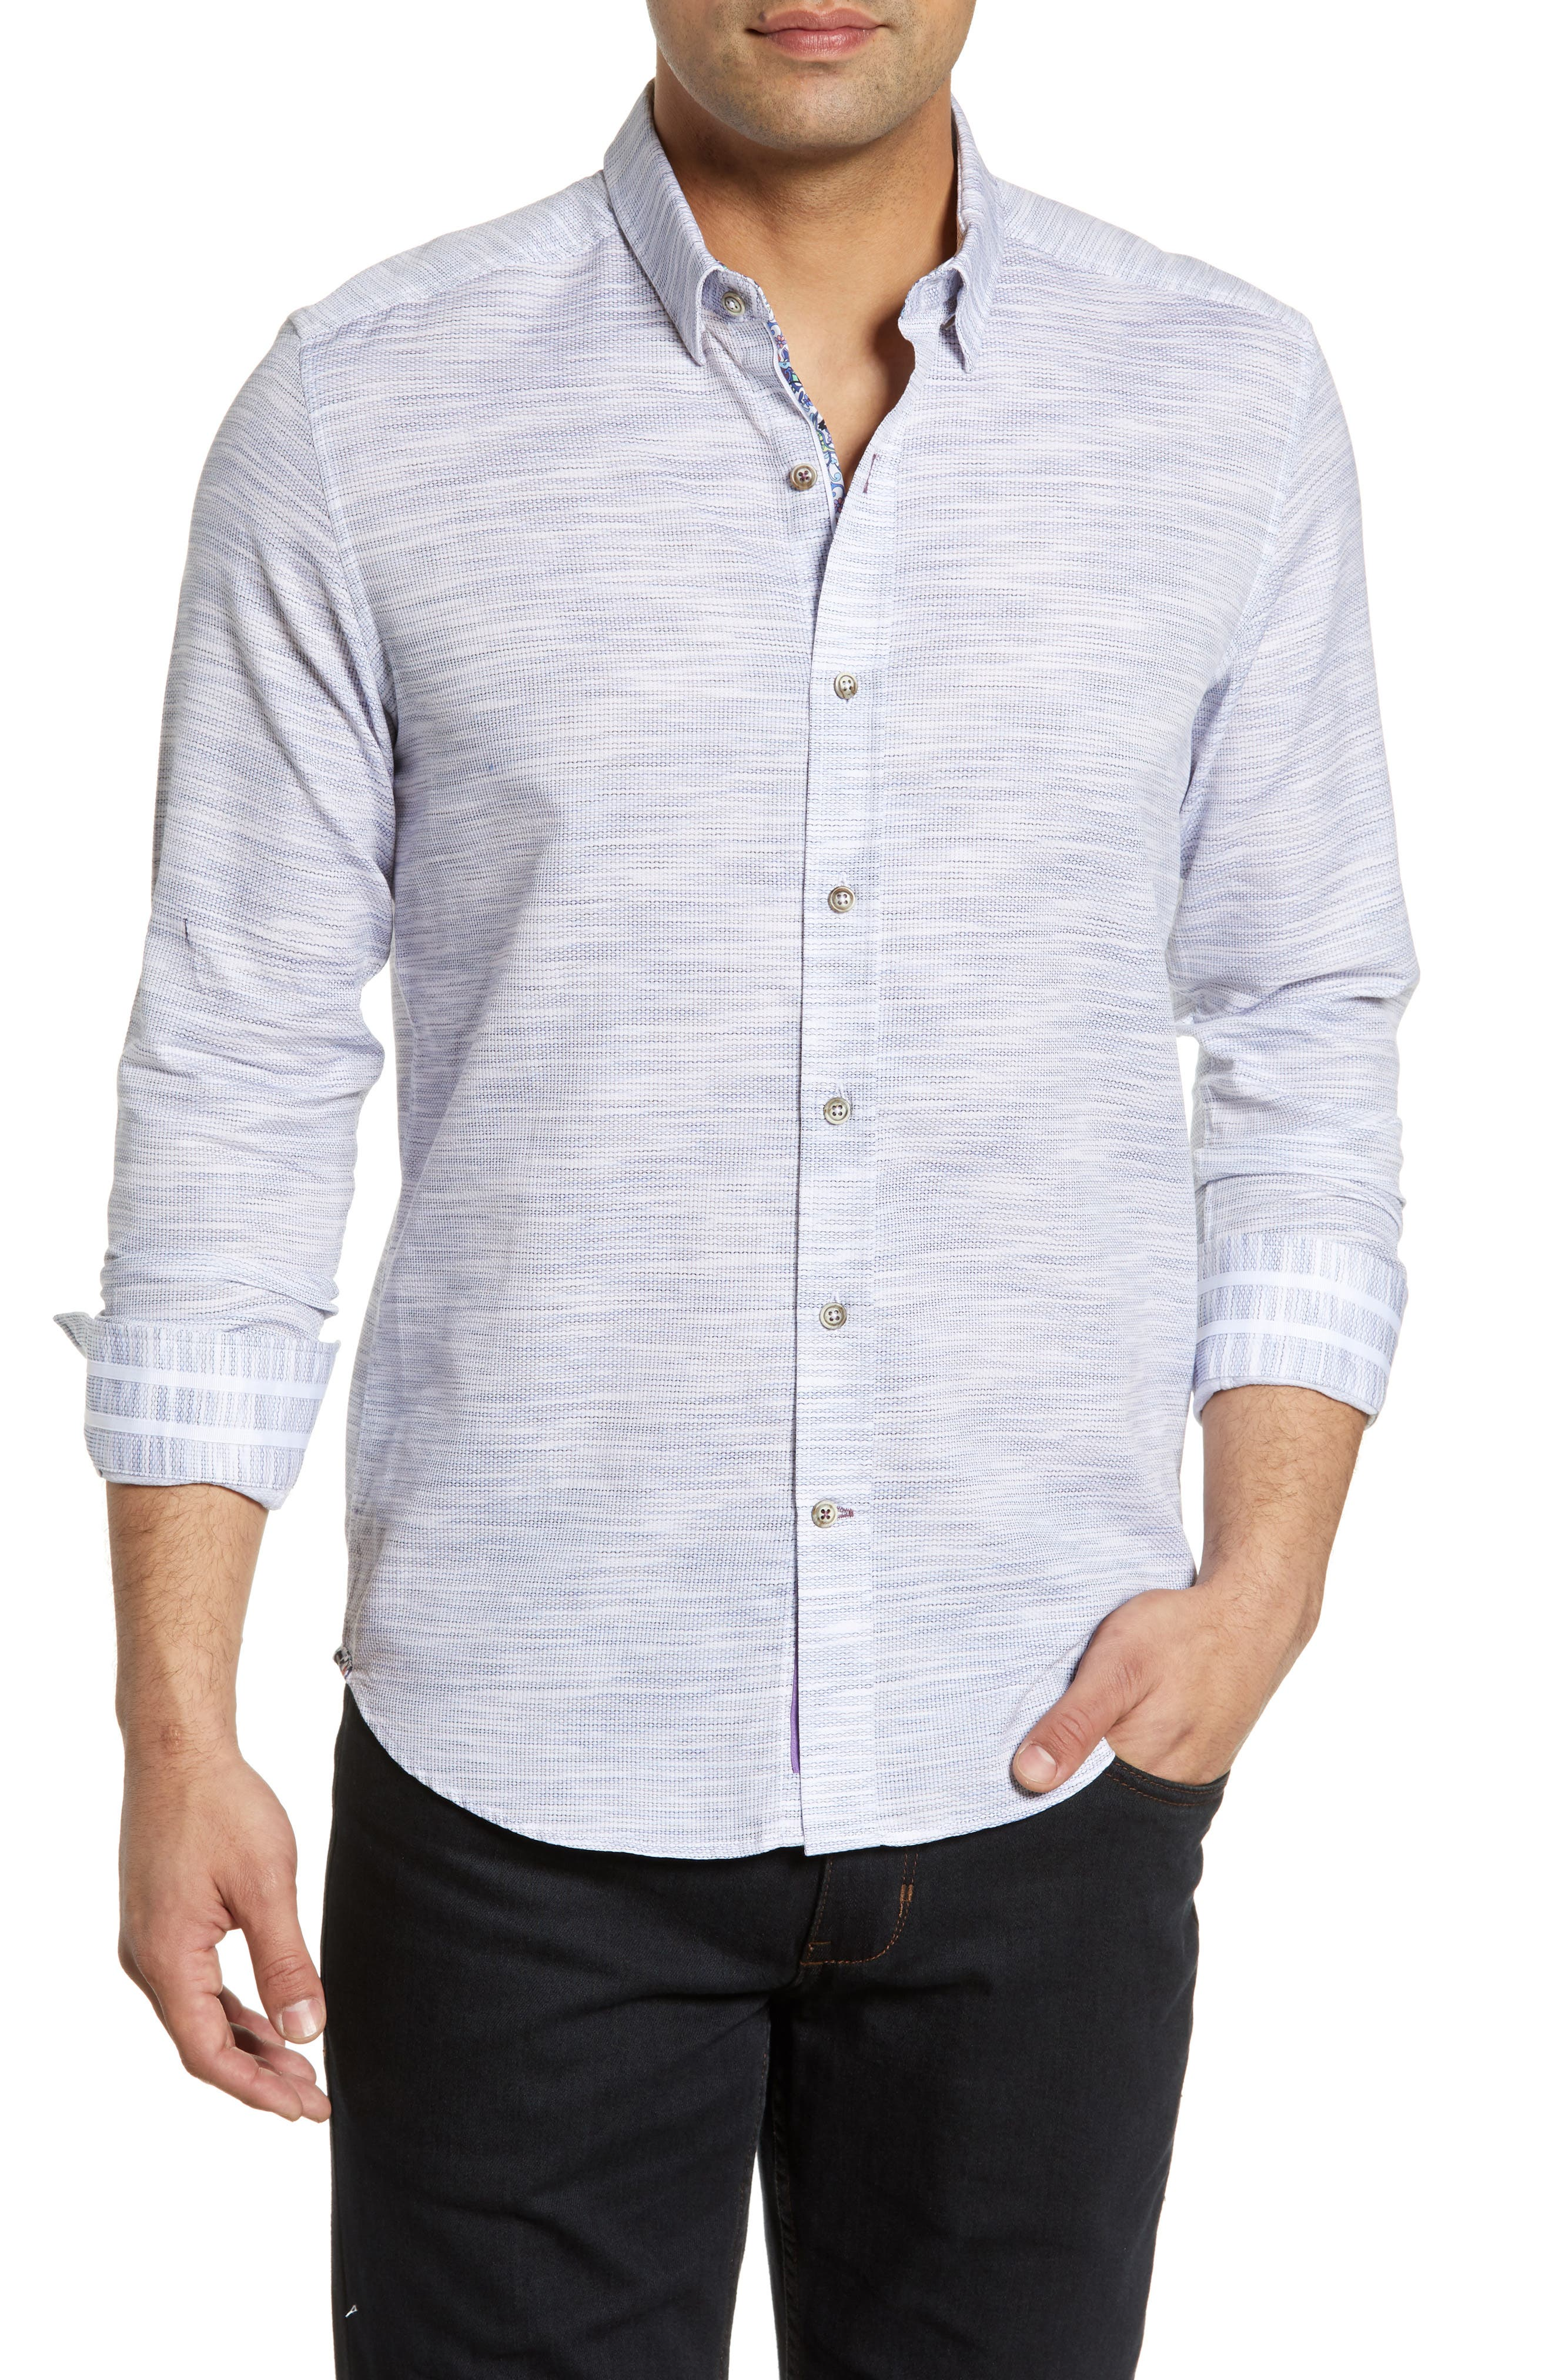 ROBERT GRAHAM Crantor Tailored Fit Knit Sport Shirt, Main, color, WHITE